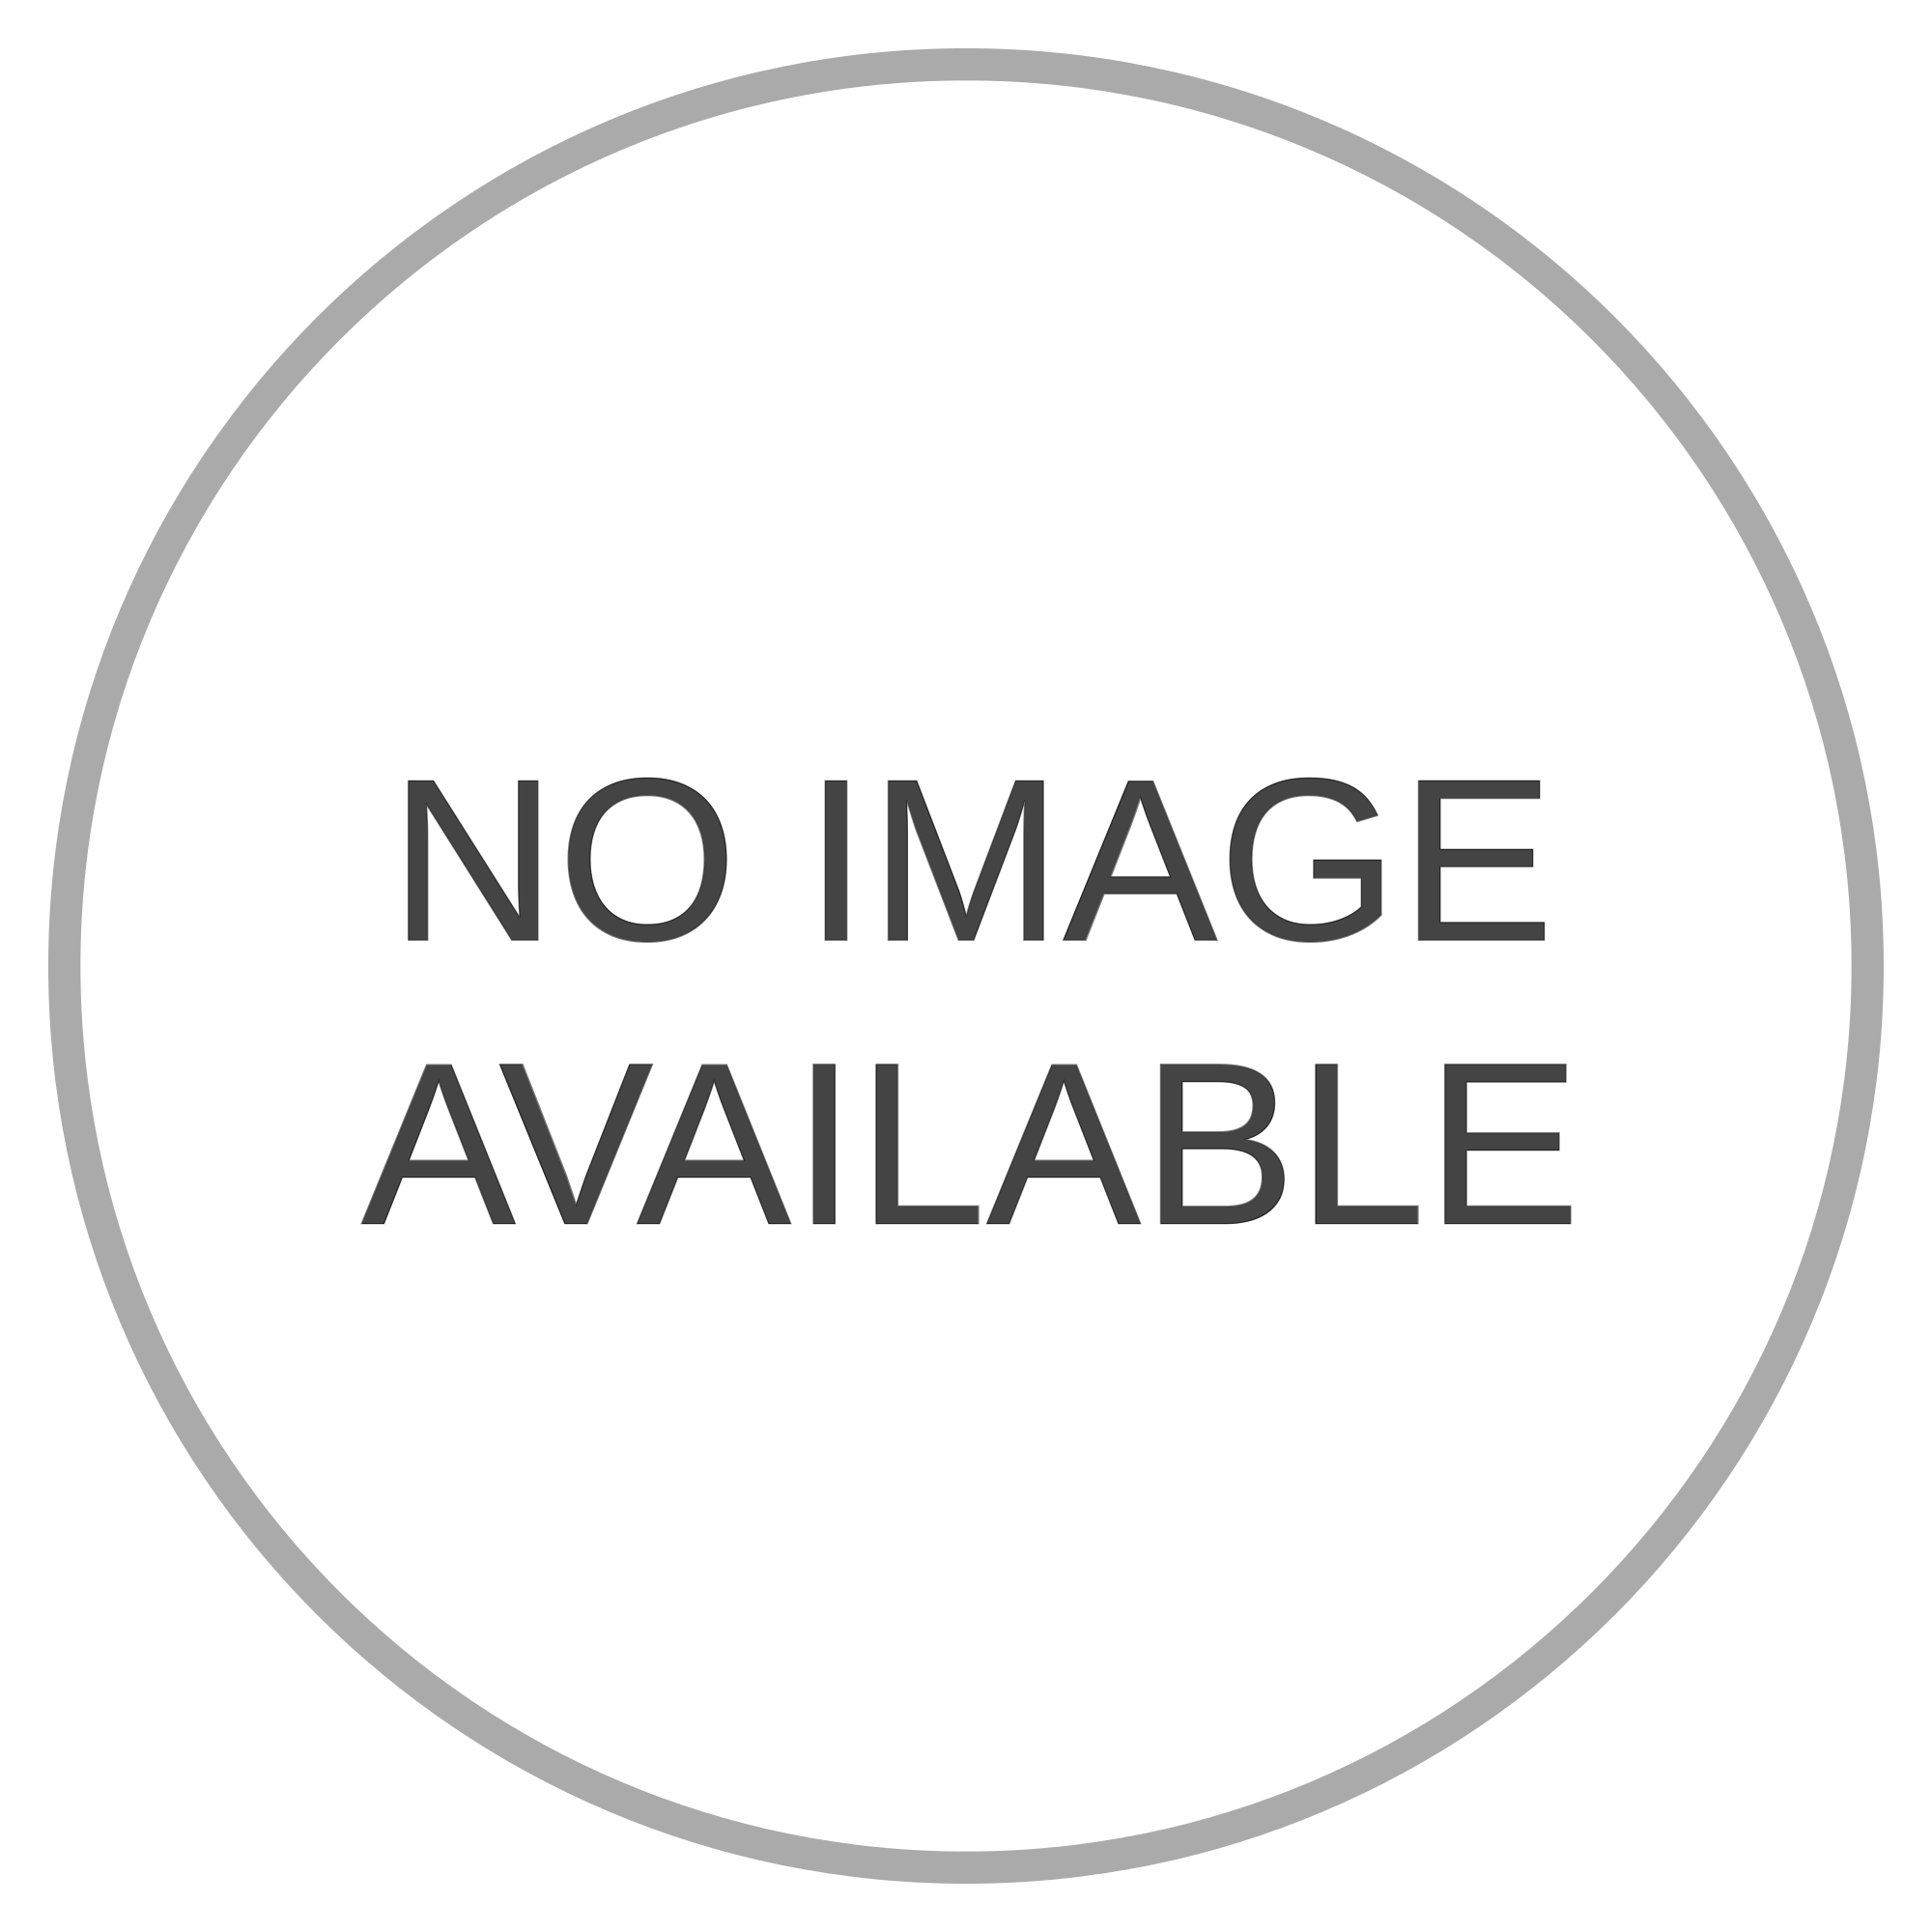 no-image-available1